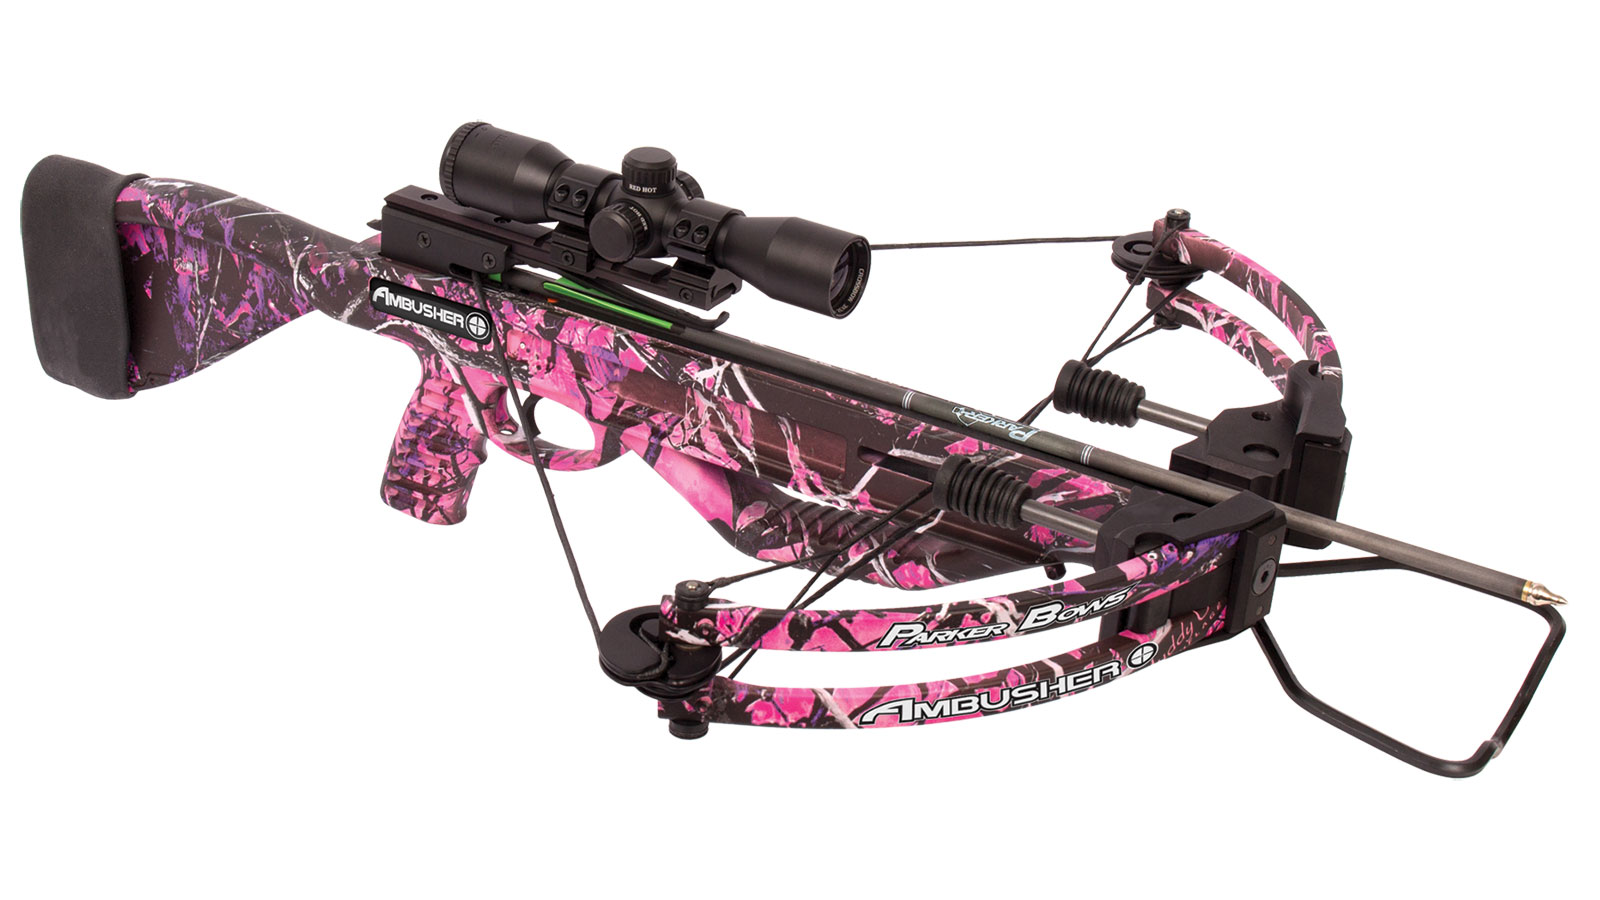 Parker Bows Ambusher Pink Crossbow Outfitter Package 3X Illuminated Multi-Reticle Scope